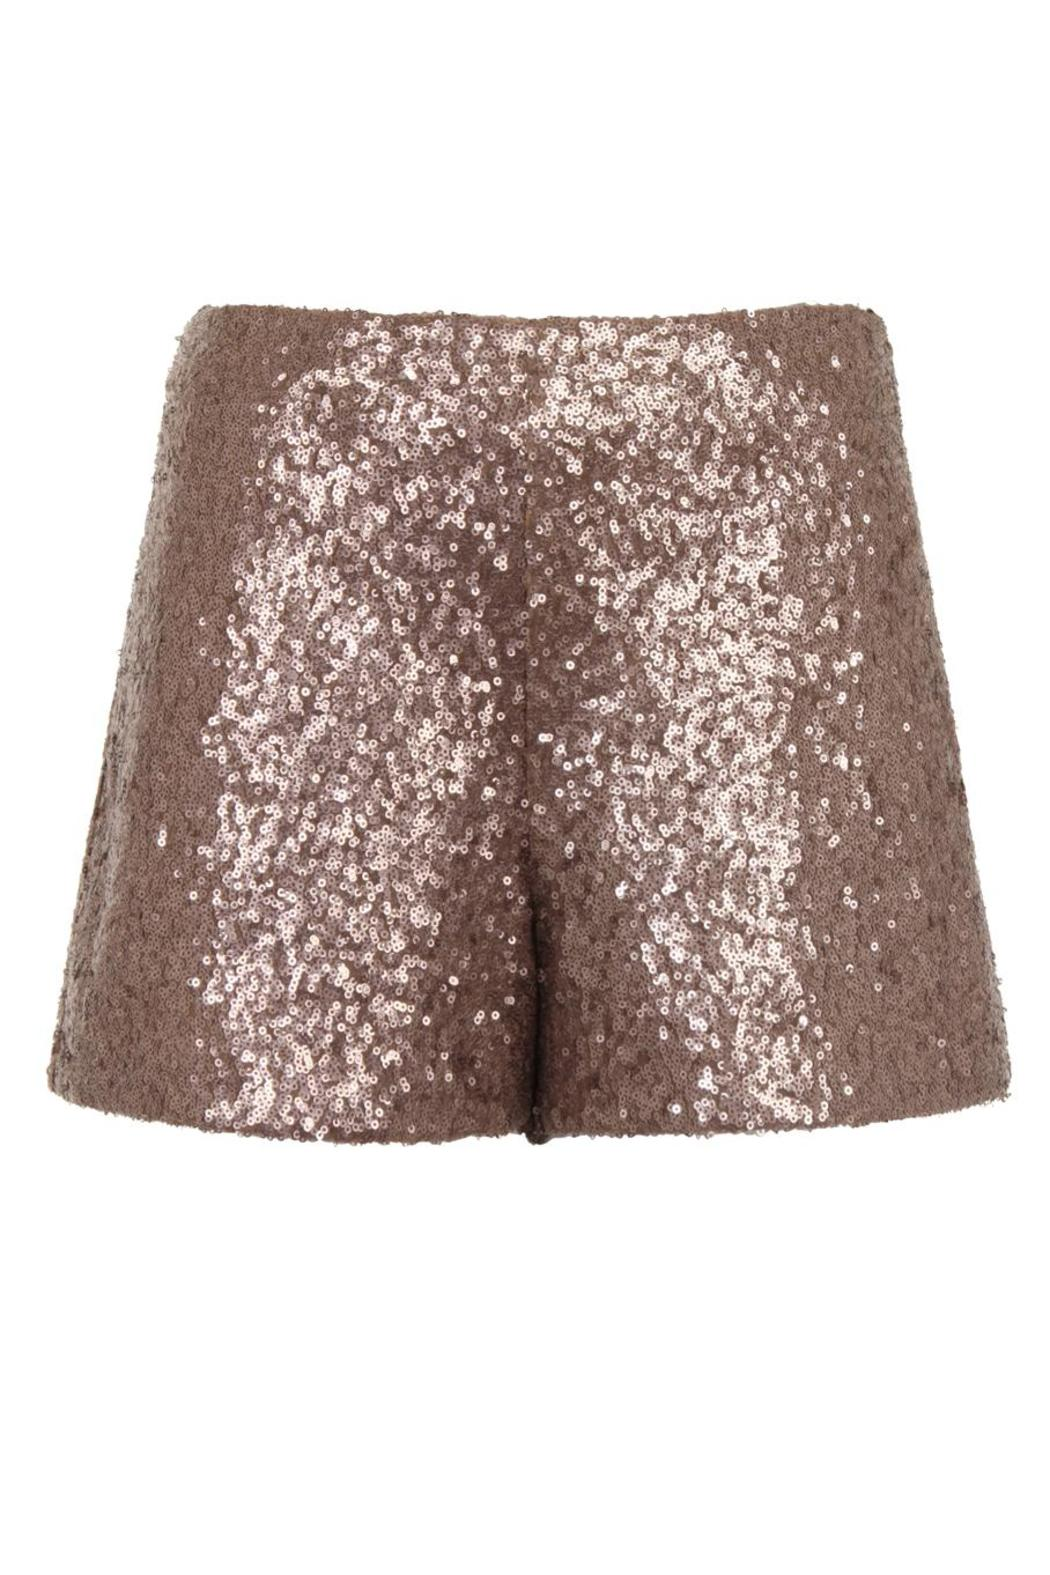 Darling Octavia Shorts - Front Cropped Image